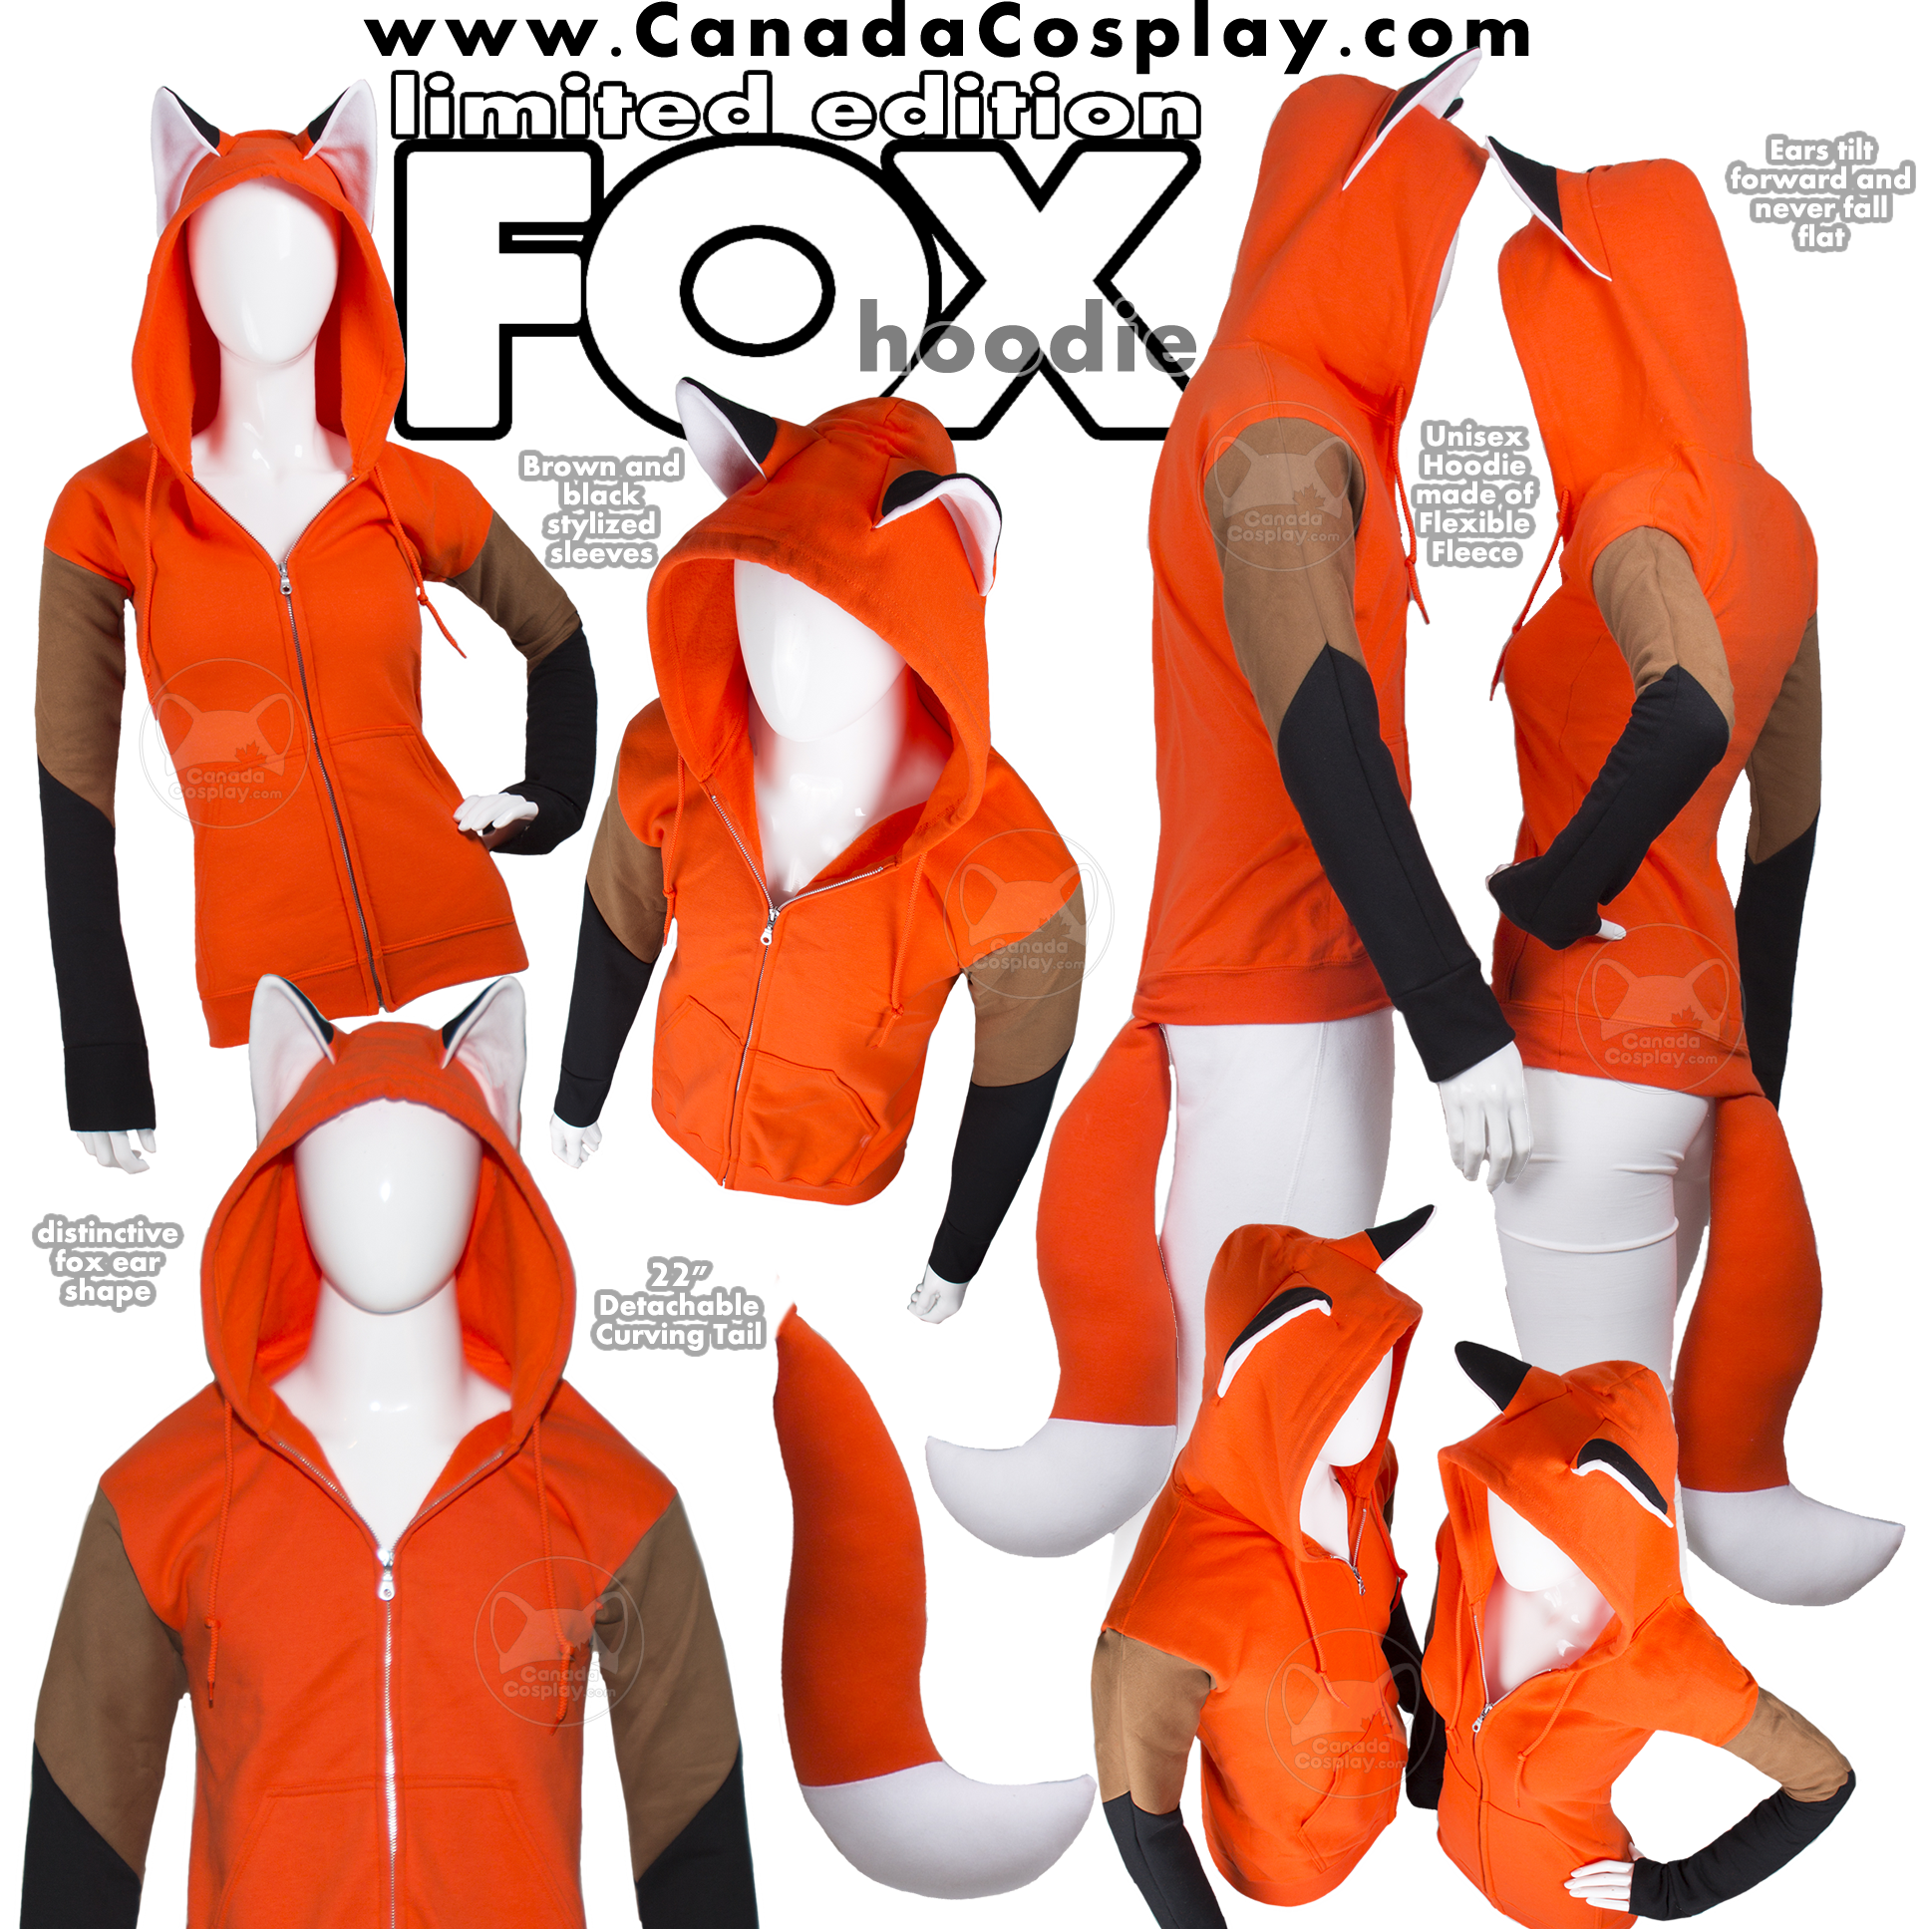 Fox Hoodie Limited Edition by calgarycosplay